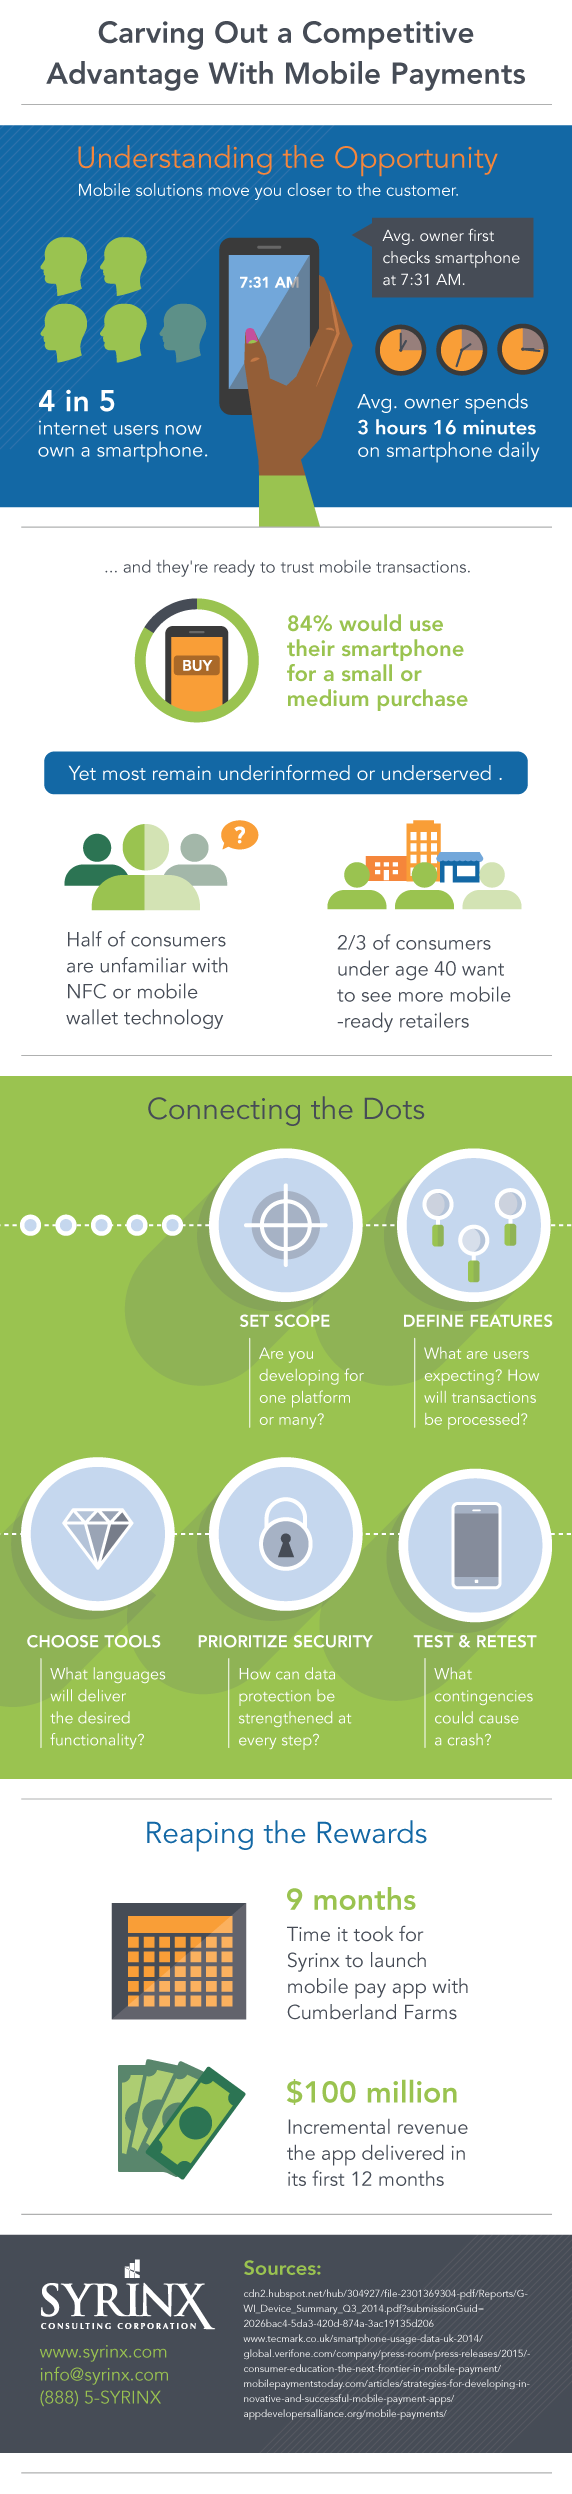 Competitive Advantage with Mobile Payments Infographic